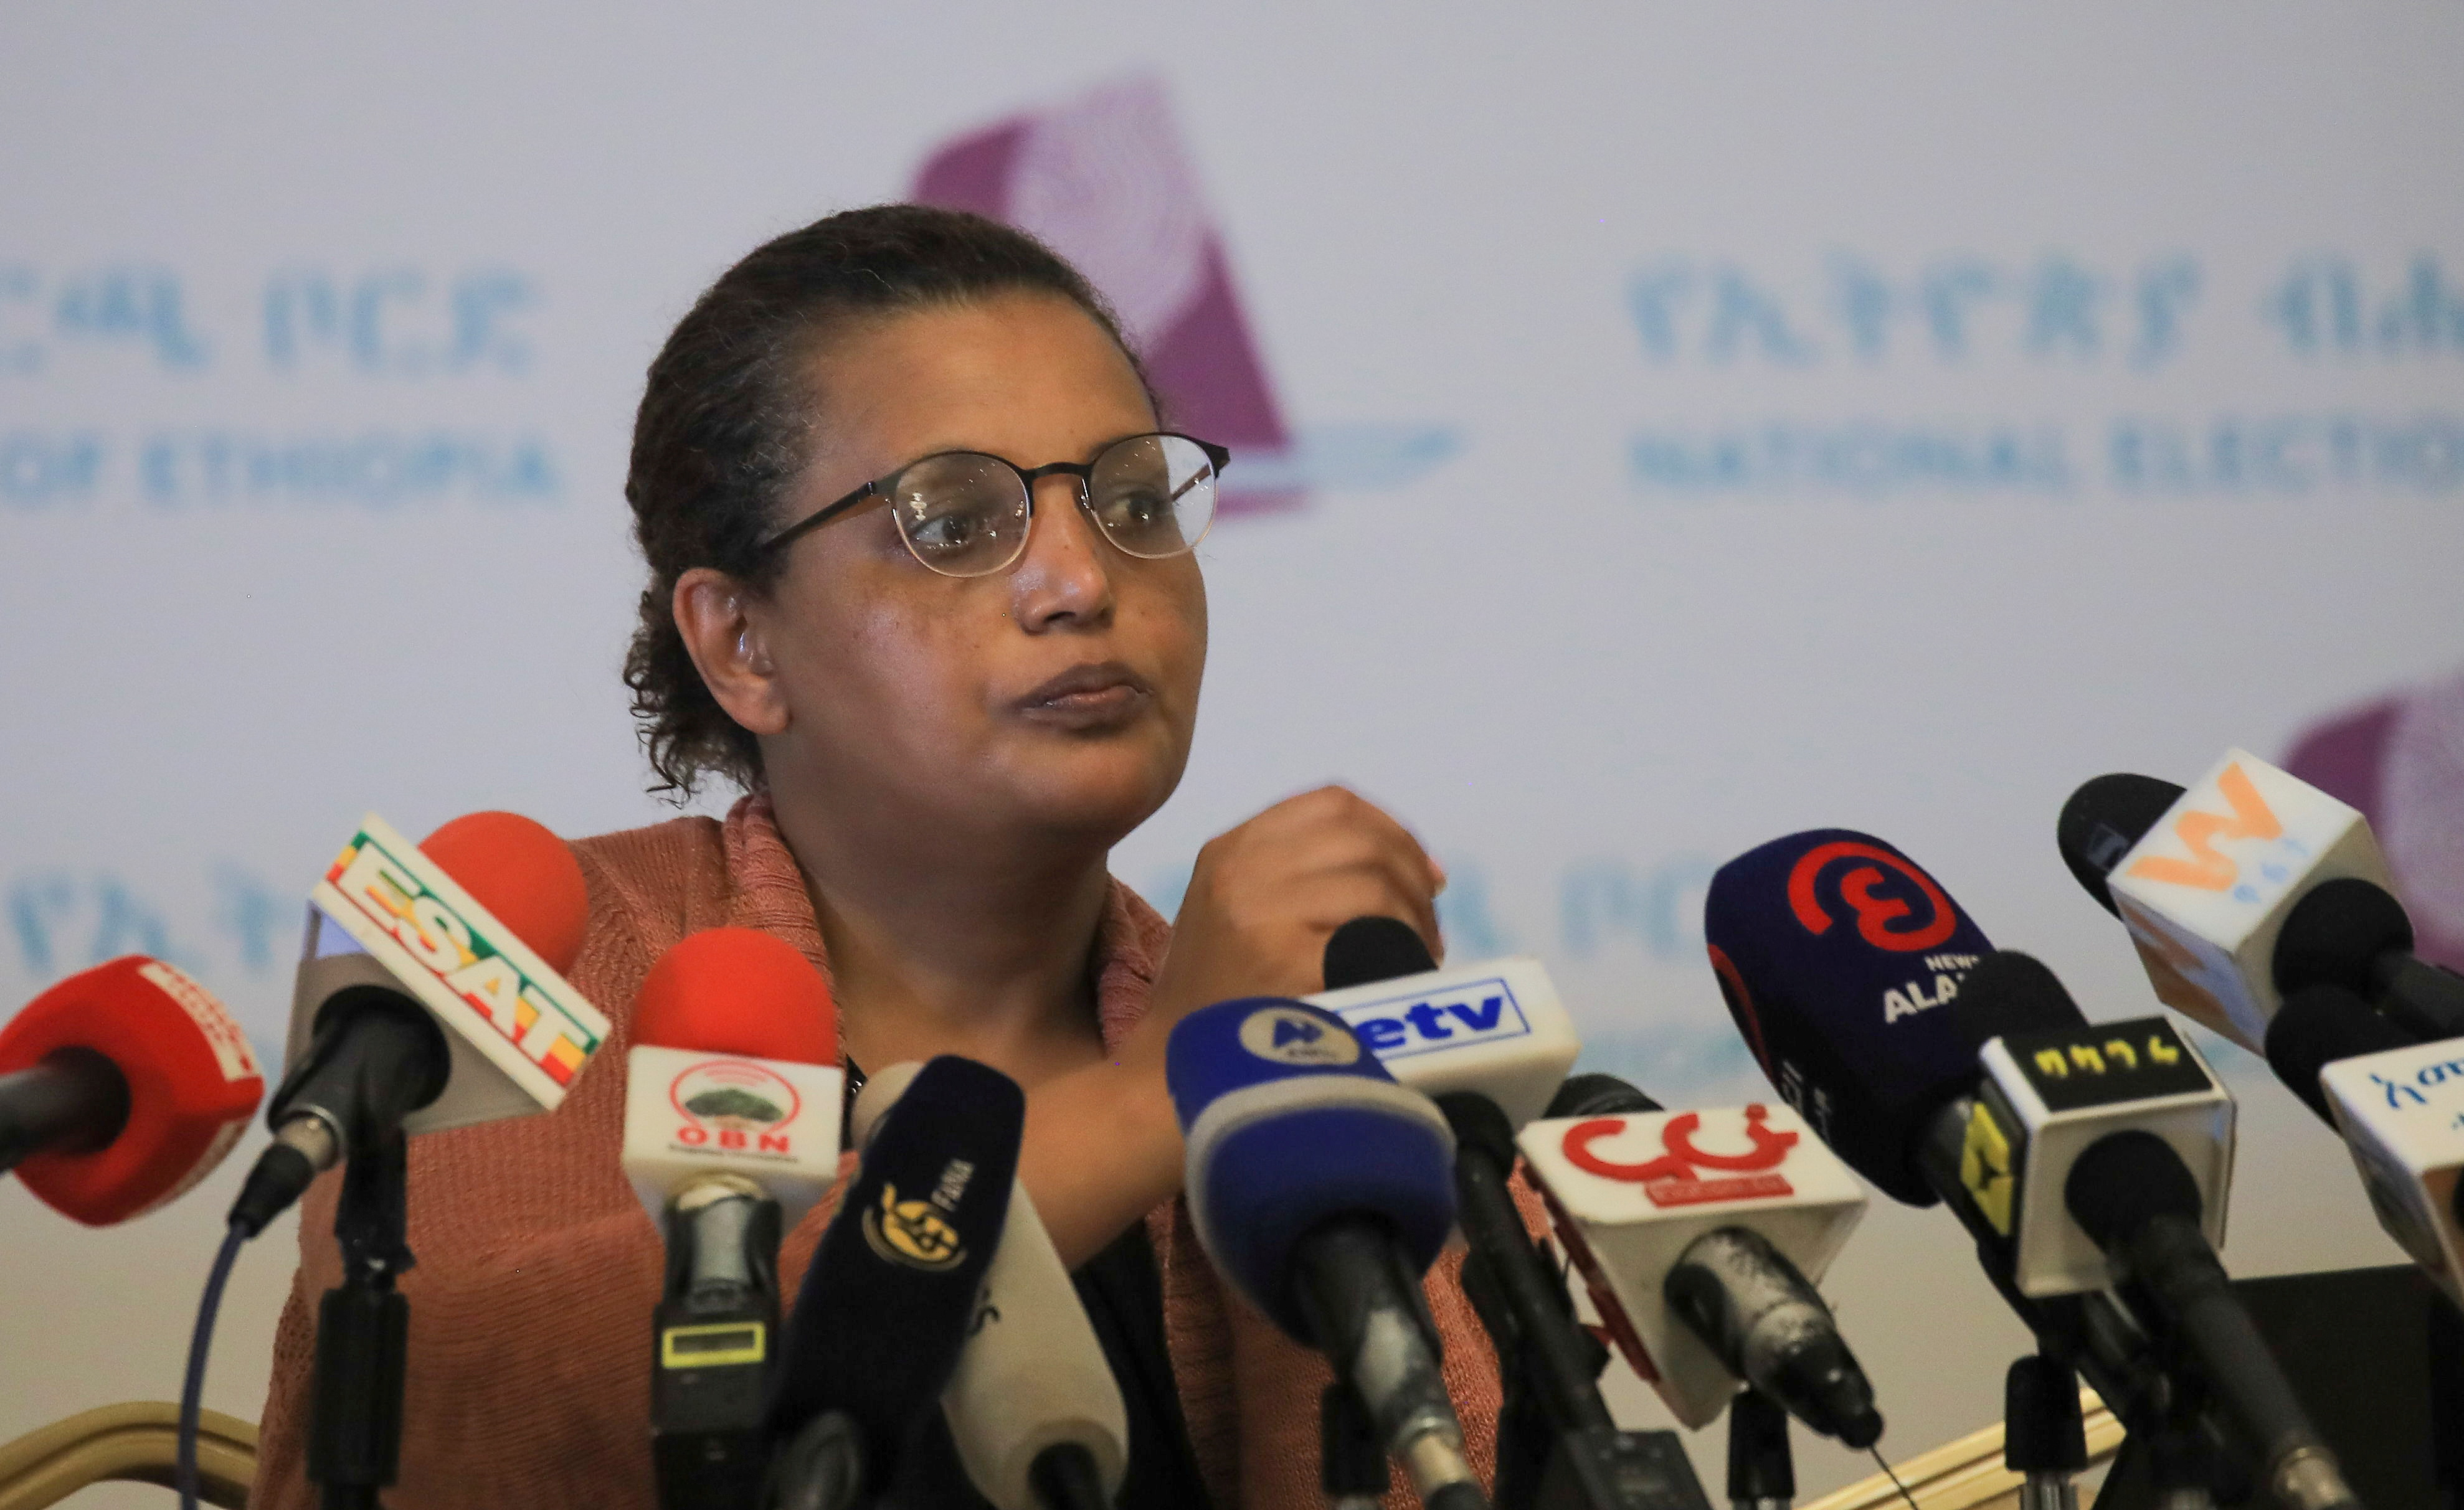 National Electoral Board of Ethiopia Chairperson, Birtukan Mideksa attends a news conference on the preparation of the upcoming National Election in Addis Ababa, Ethiopia June 10, 2021. REUTERS/Tiksa Negeri